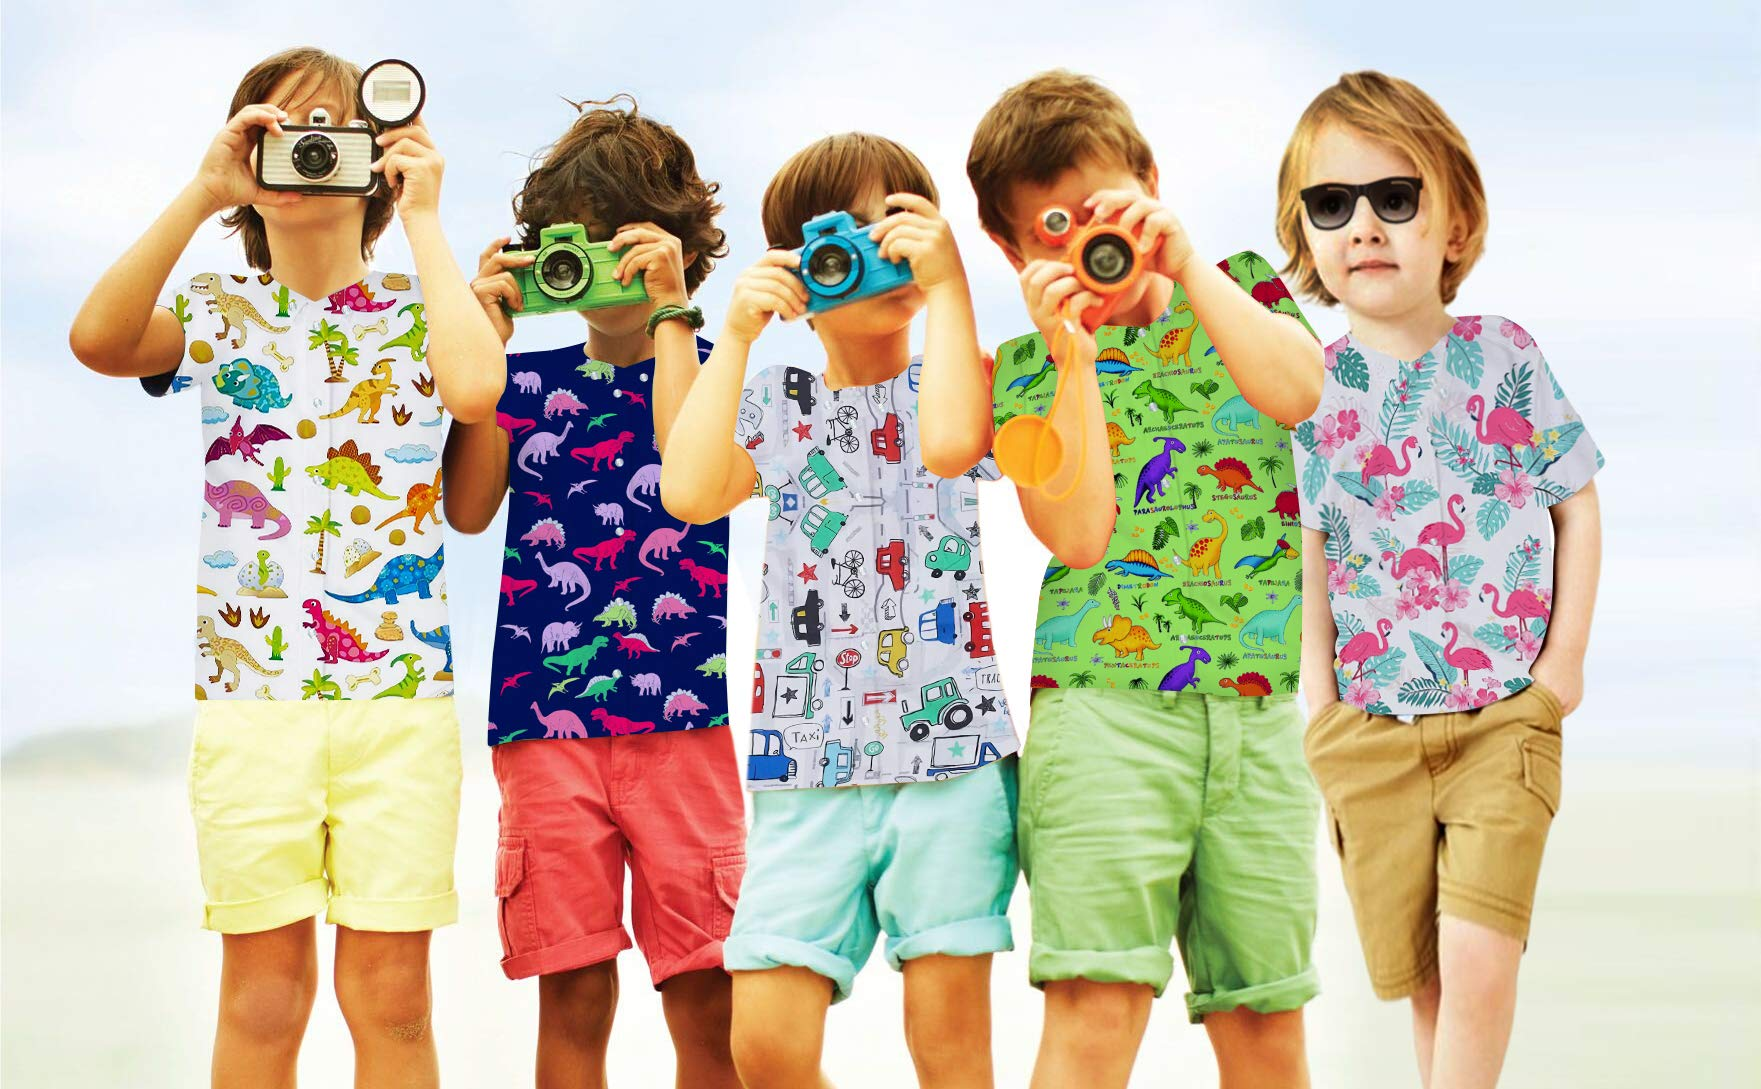 Goodstoworld Boys Button Down Shirts Kids Casual Short Sleeve Cotton Button Up Cool Dinosaur Print Tees Tops Blouse 5-6T by Goodstoworld (Image #4)